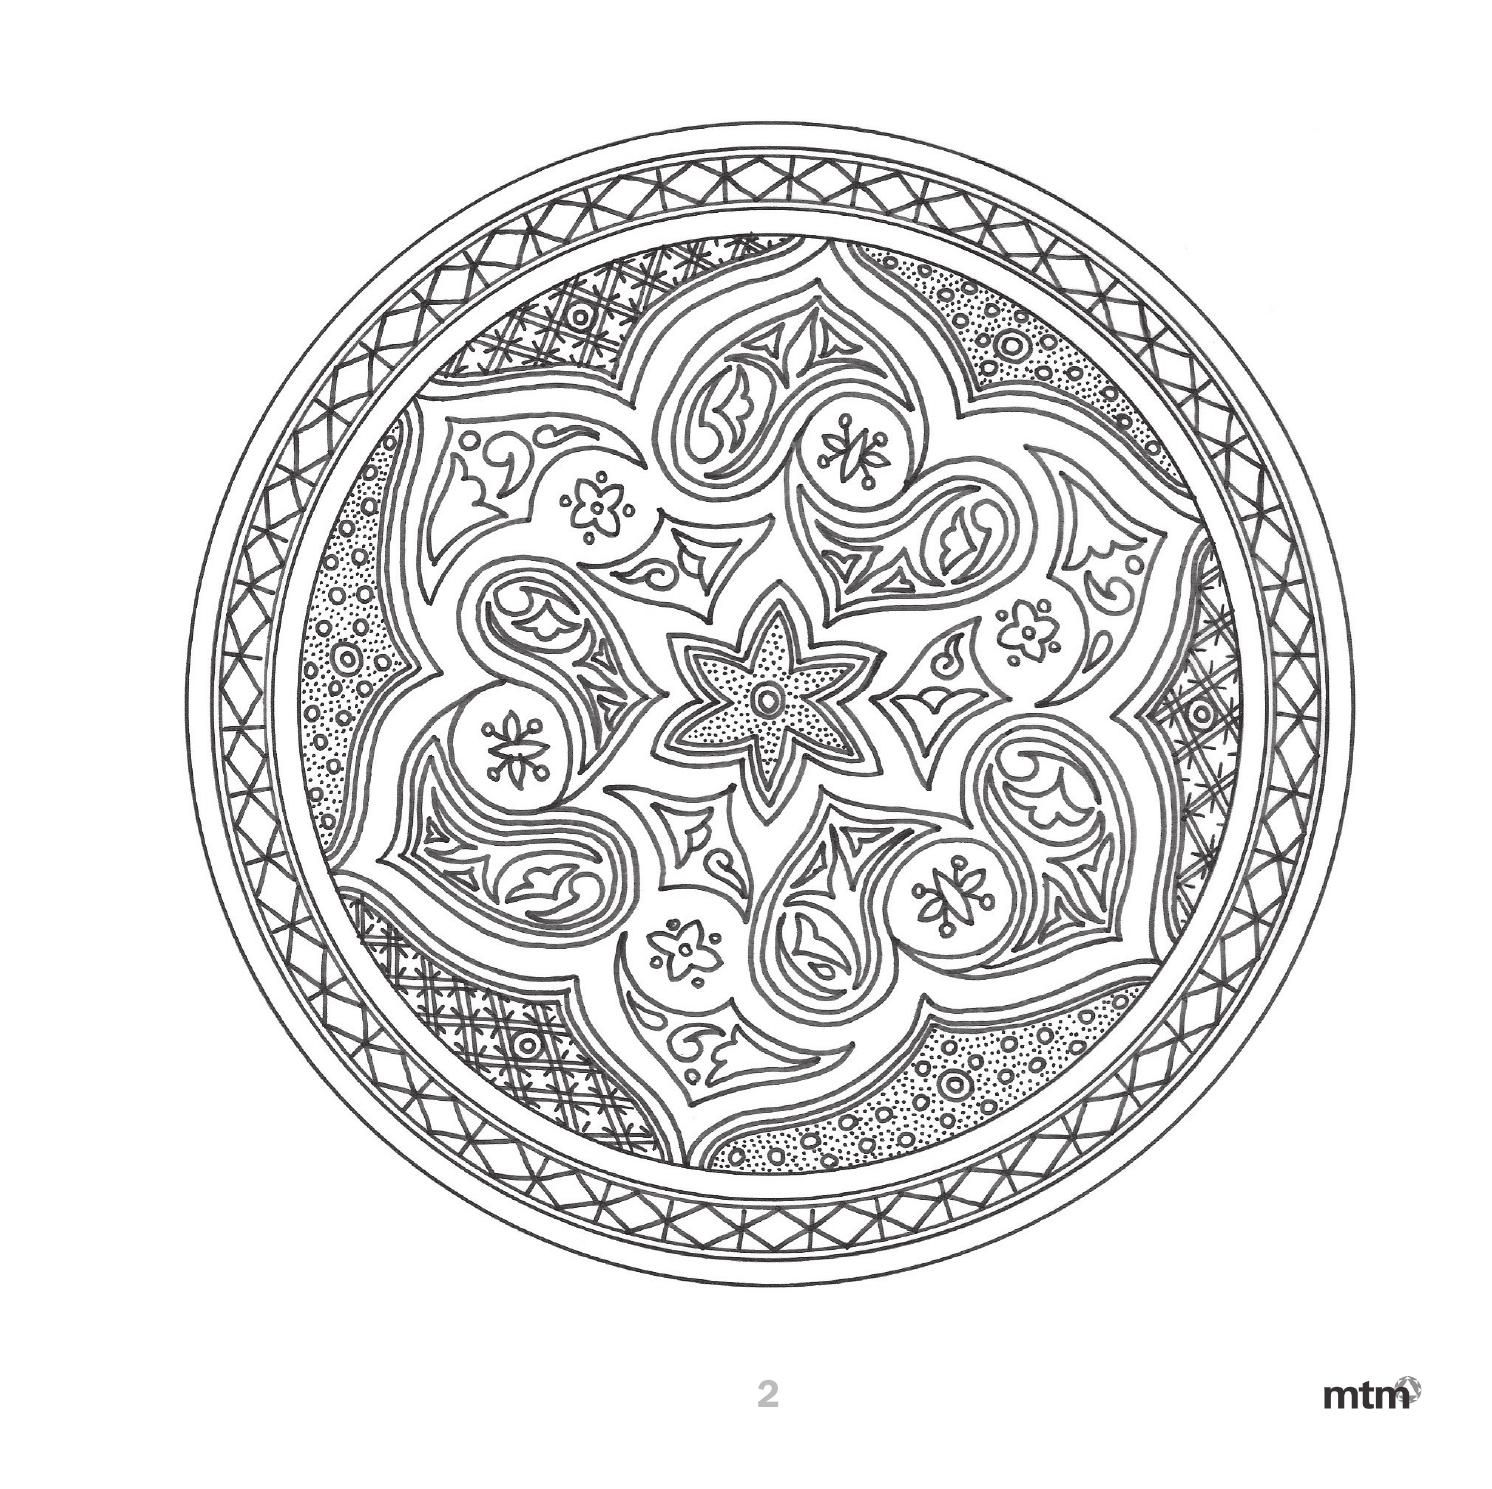 Arte Andaluz En Mandalas Mtm Editores By Mtm Editores Issuu Trippy Drawings Coloring Pages Adult Coloring Pages